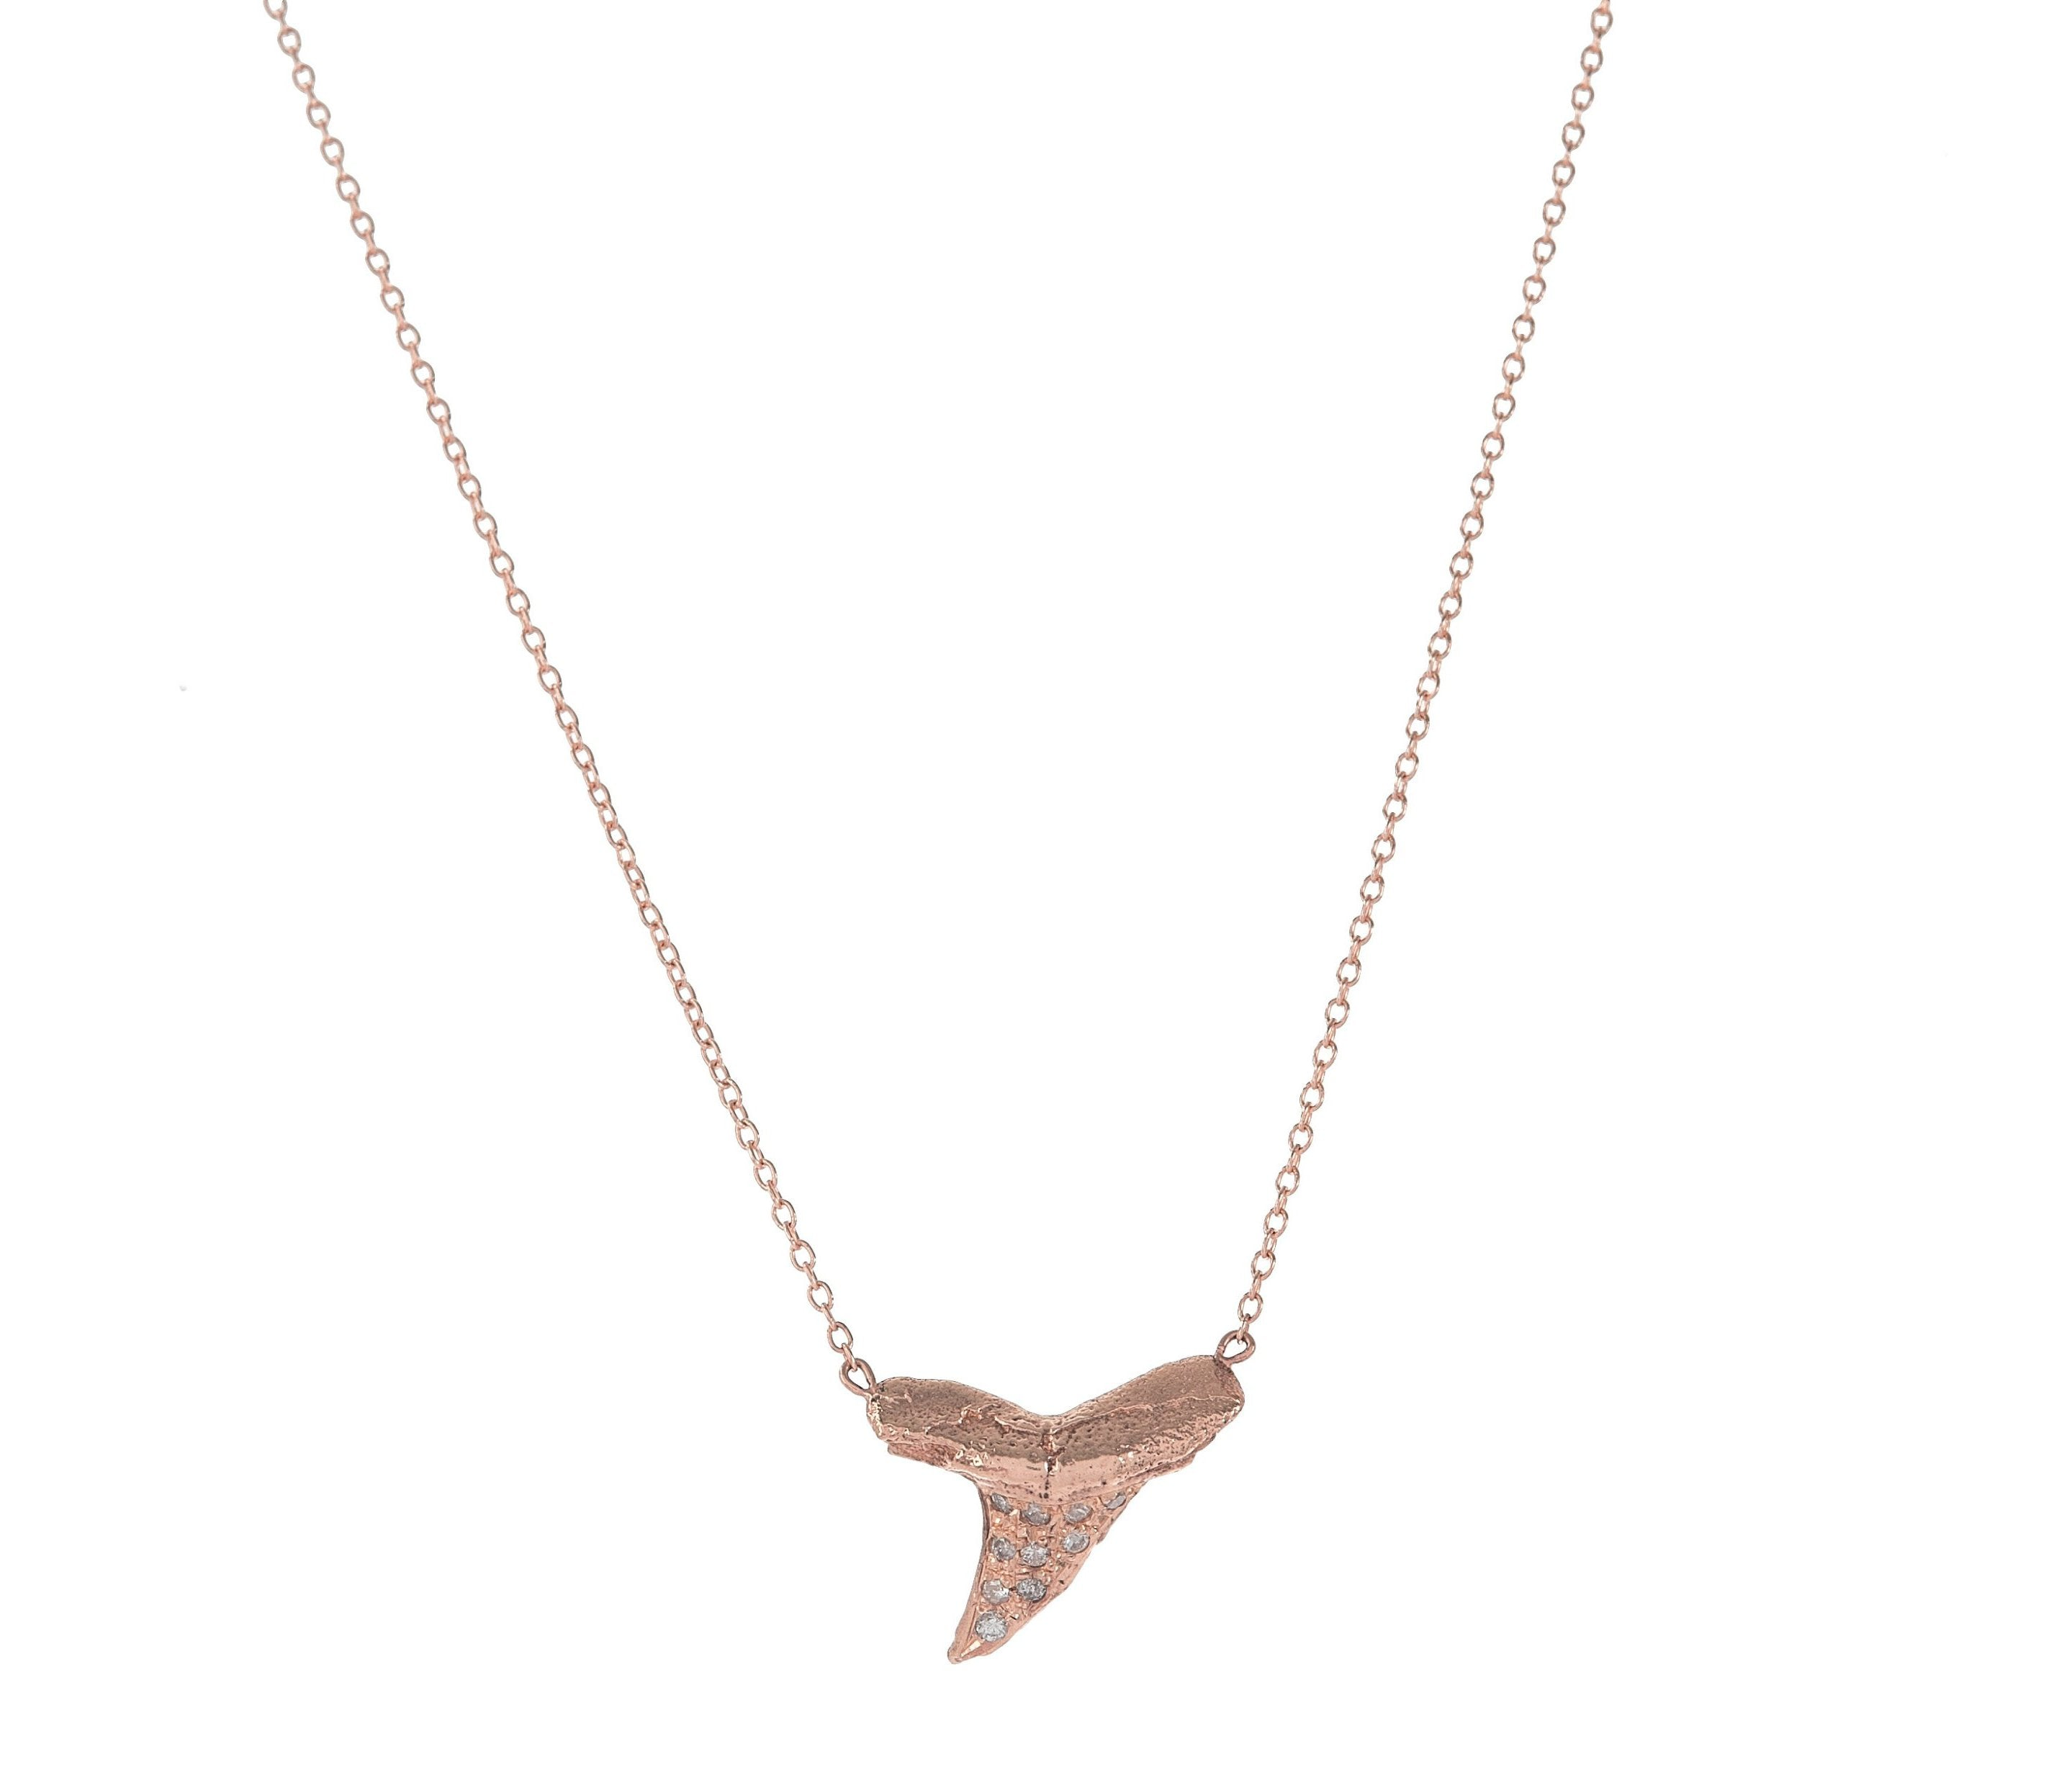 Pave Diamond Shark's Tooth Necklace